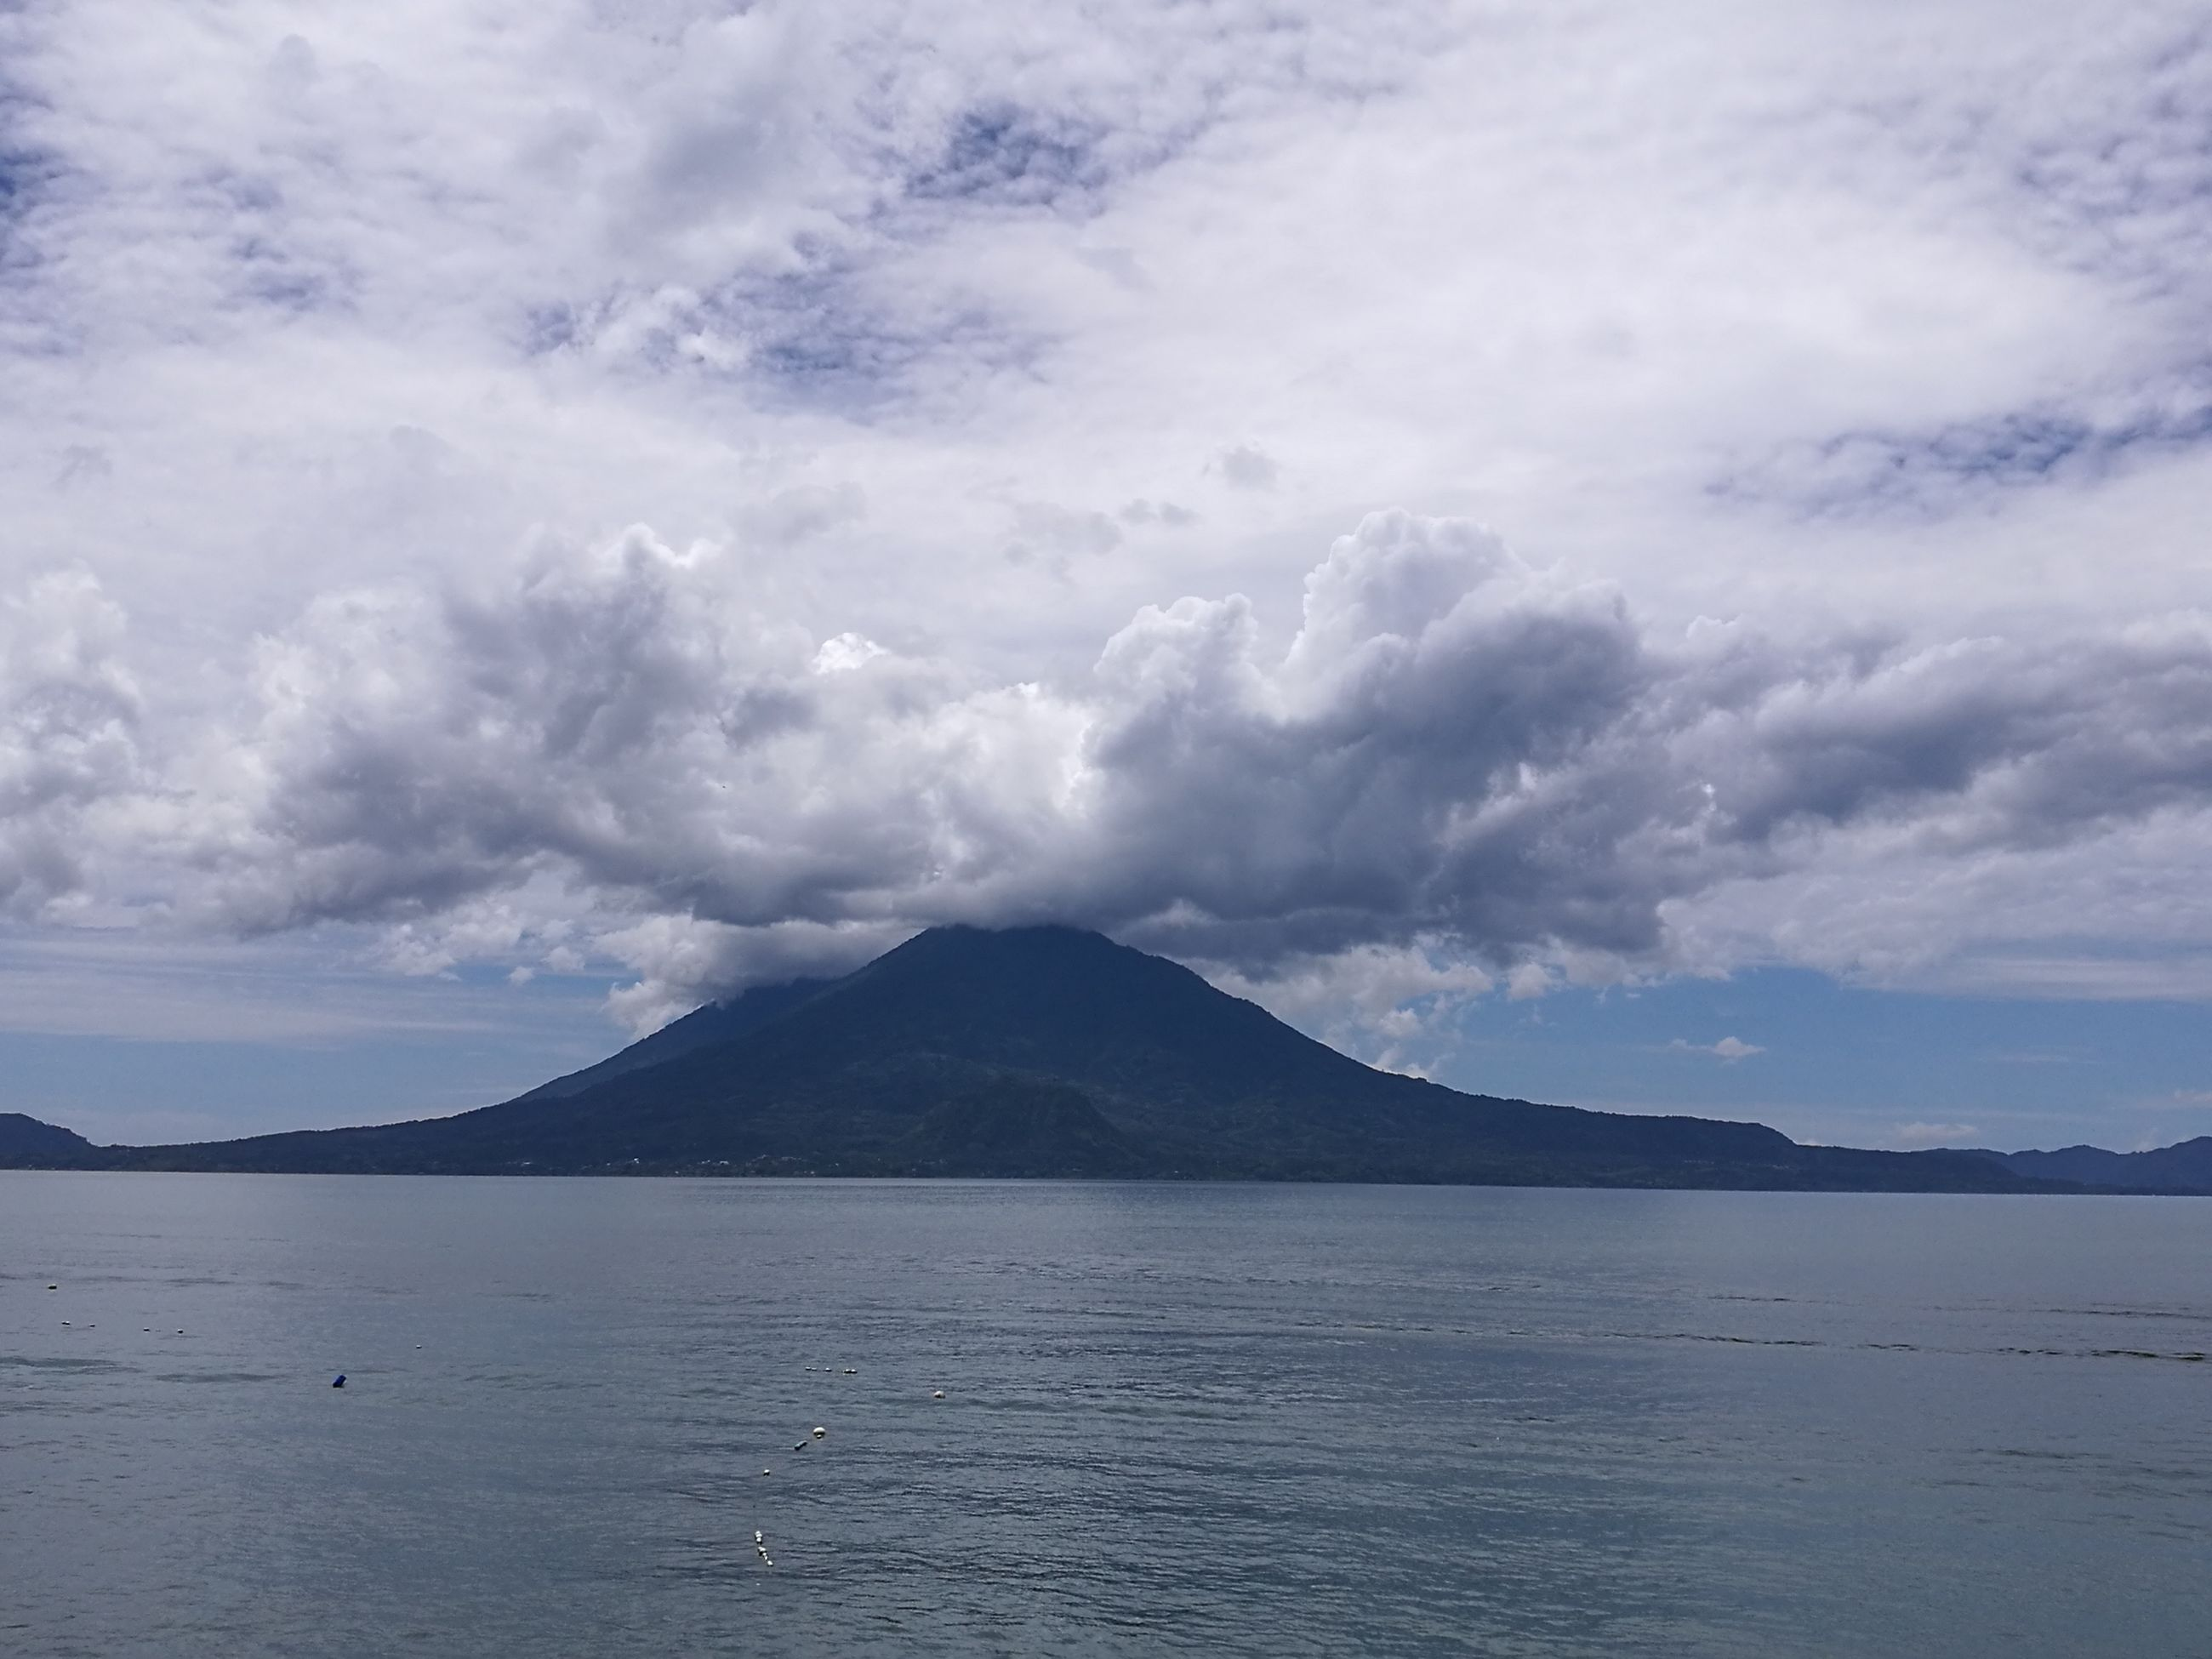 mountain, water, tranquil scene, scenics, tranquility, sea, beauty in nature, waterfront, sky, nature, idyllic, cloud - sky, majestic, non-urban scene, calm, tourism, travel destinations, mountain range, remote, cloud, outdoors, day, cloudscape, vacations, seascape, atmospheric mood, dramatic sky, solitude, cumulus cloud, coastline, cloudy, ocean, atmosphere, no people